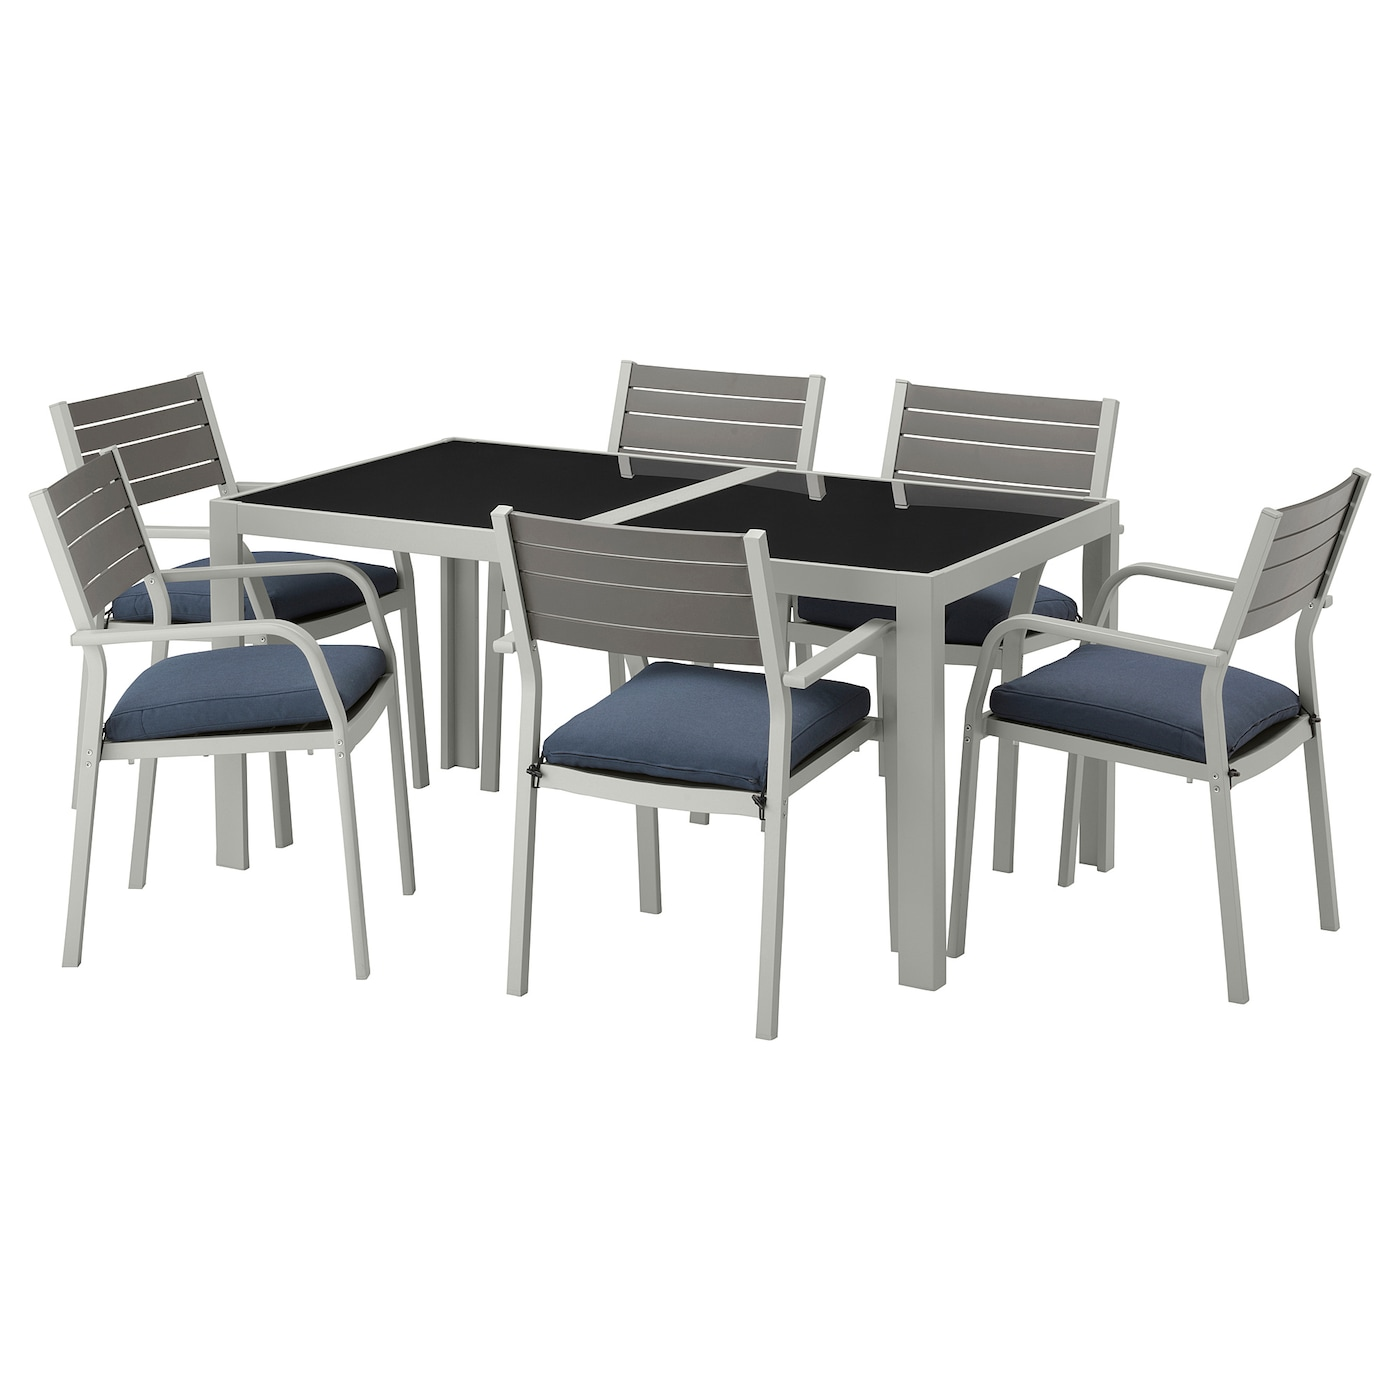 Sj lland table 6 chaises accoud ext rieur verre fr s n for Table en verre 6 chaises